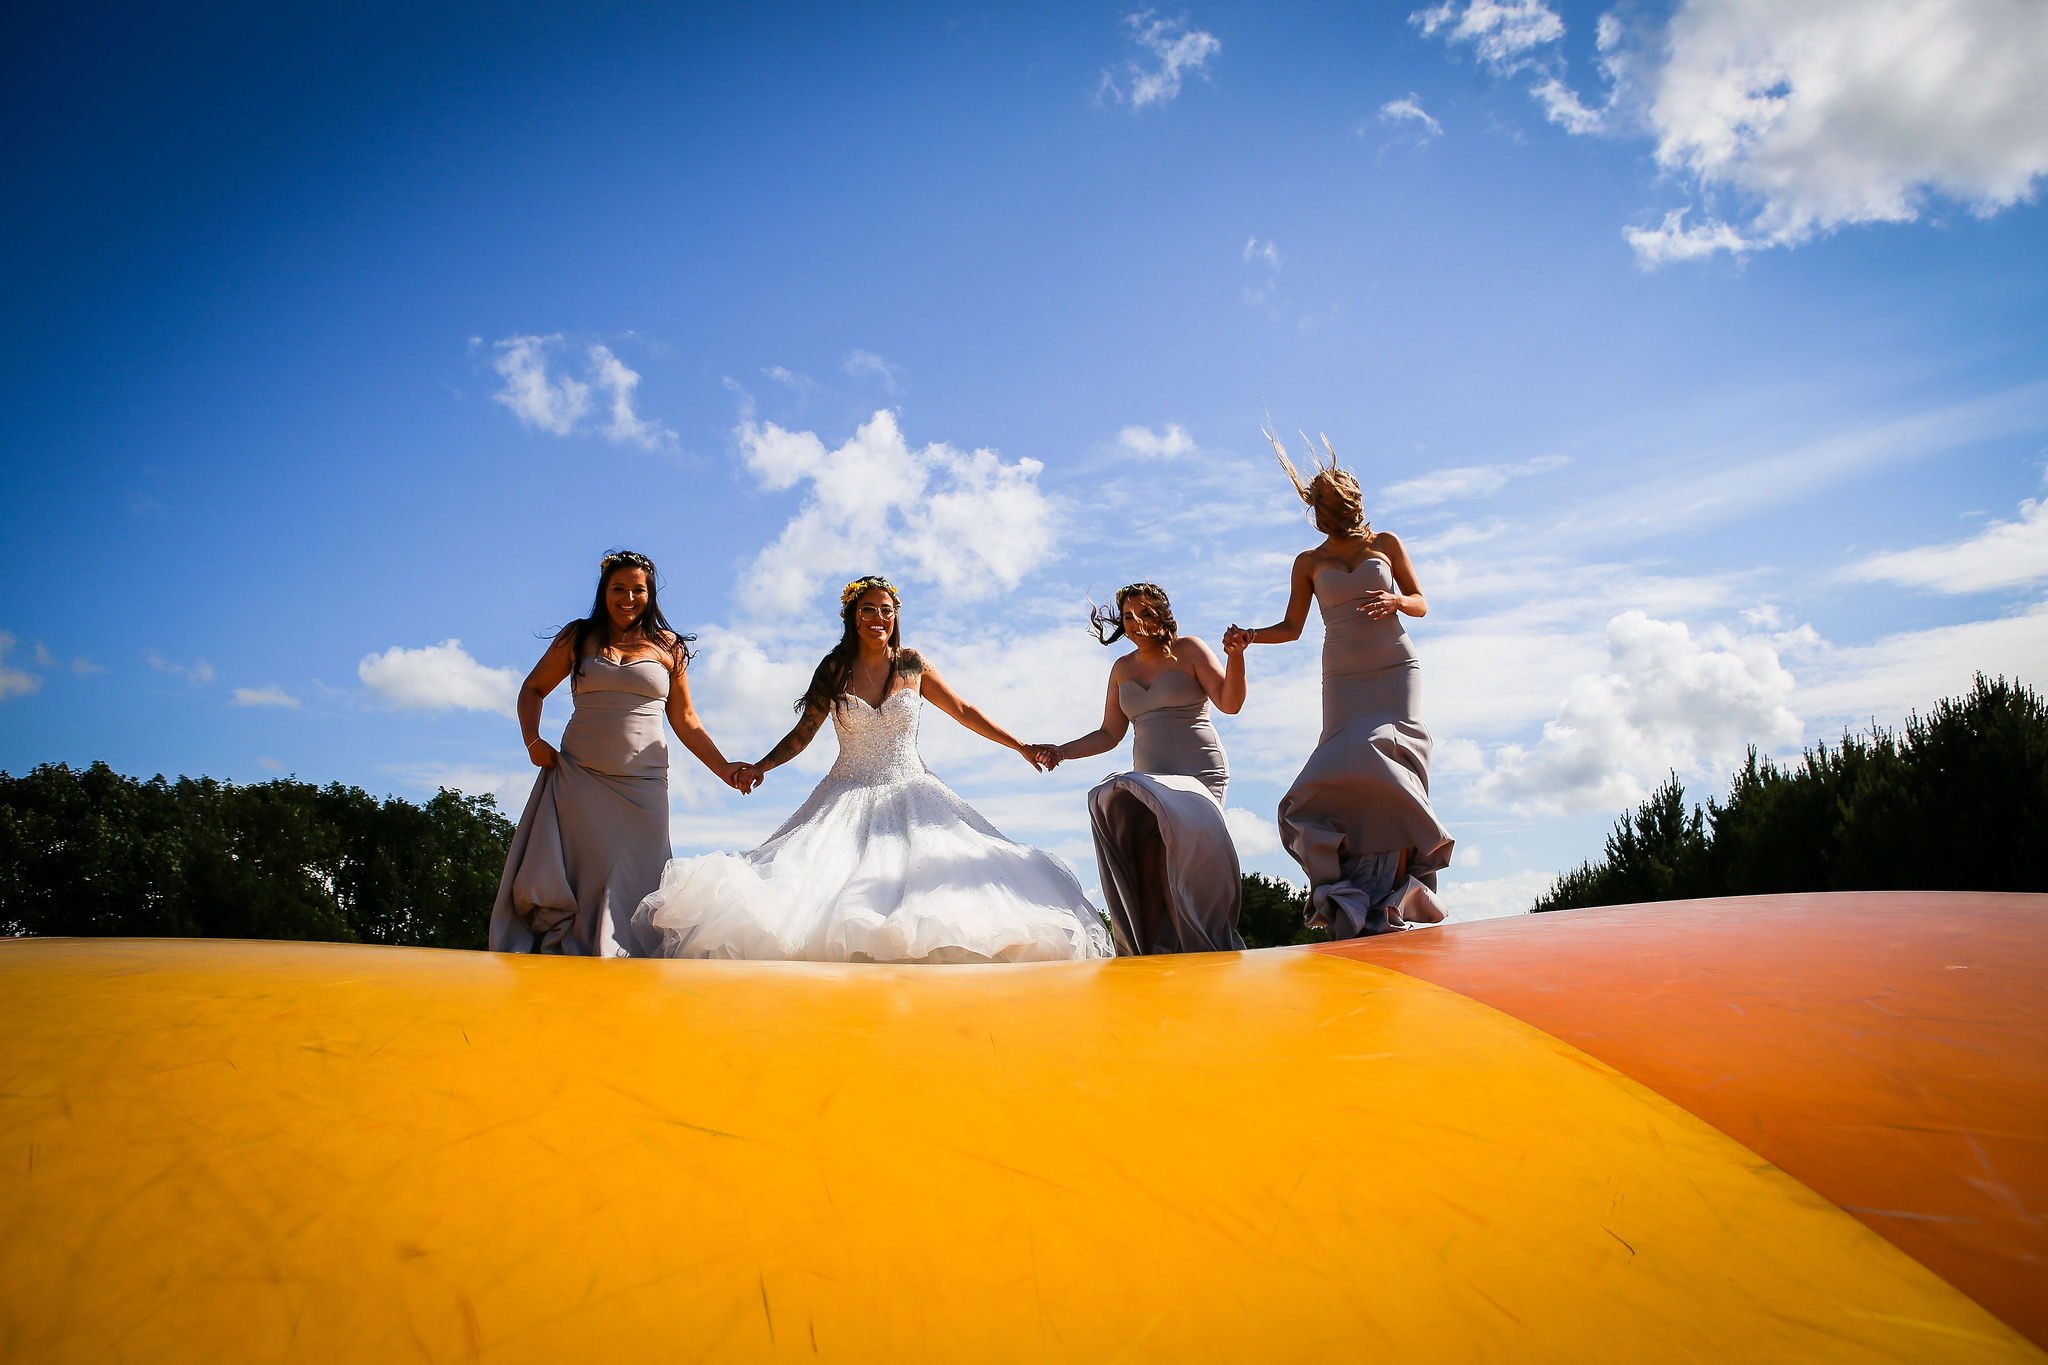 Harriet&Rhys Wedding - quirky wedding with bouncy castle (2)